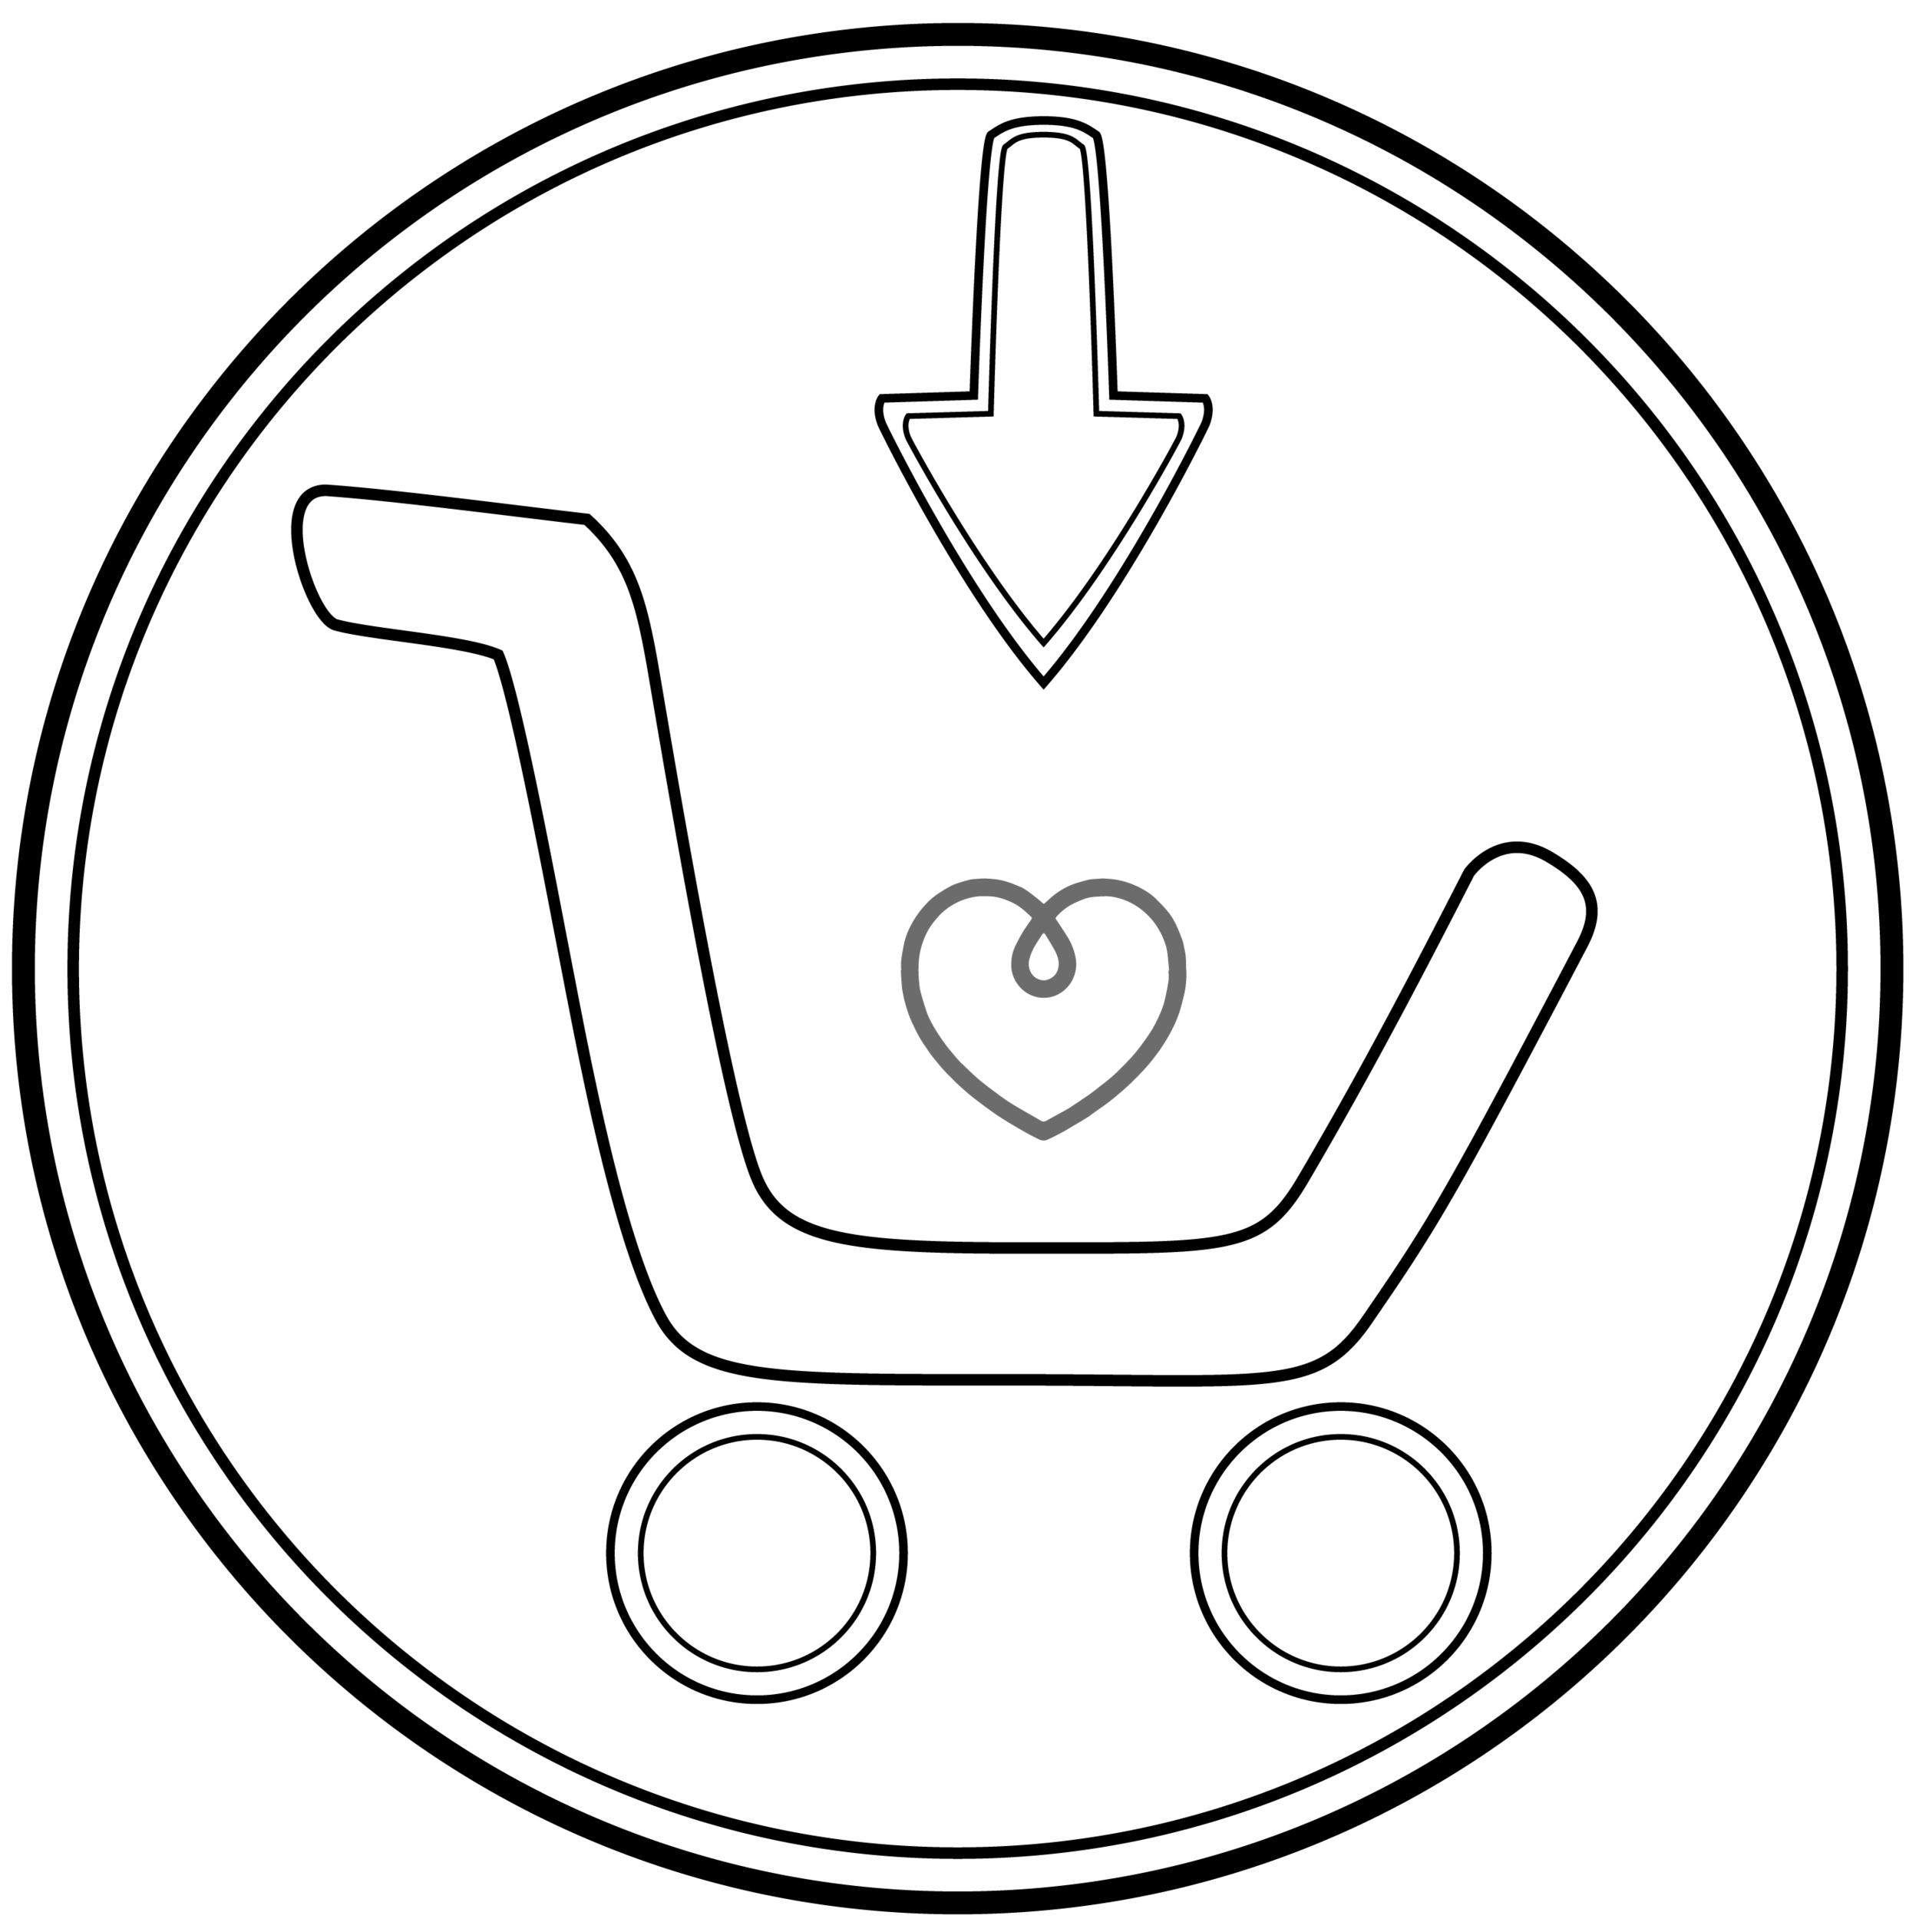 Buy-unchained-icon-illustrations-01.png